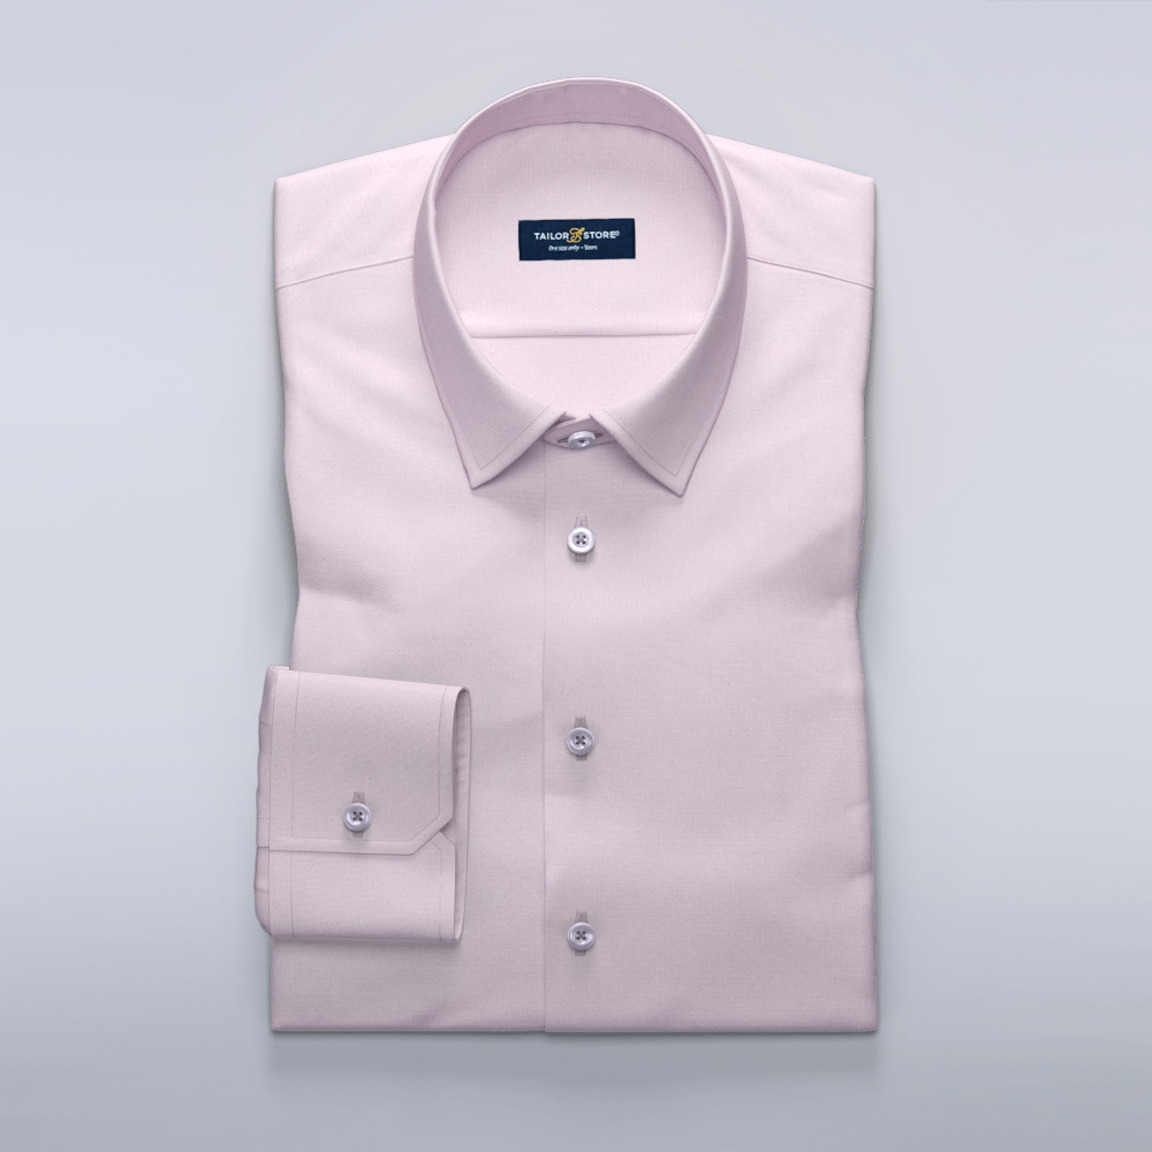 Women's business dress shirt in pink french oxford